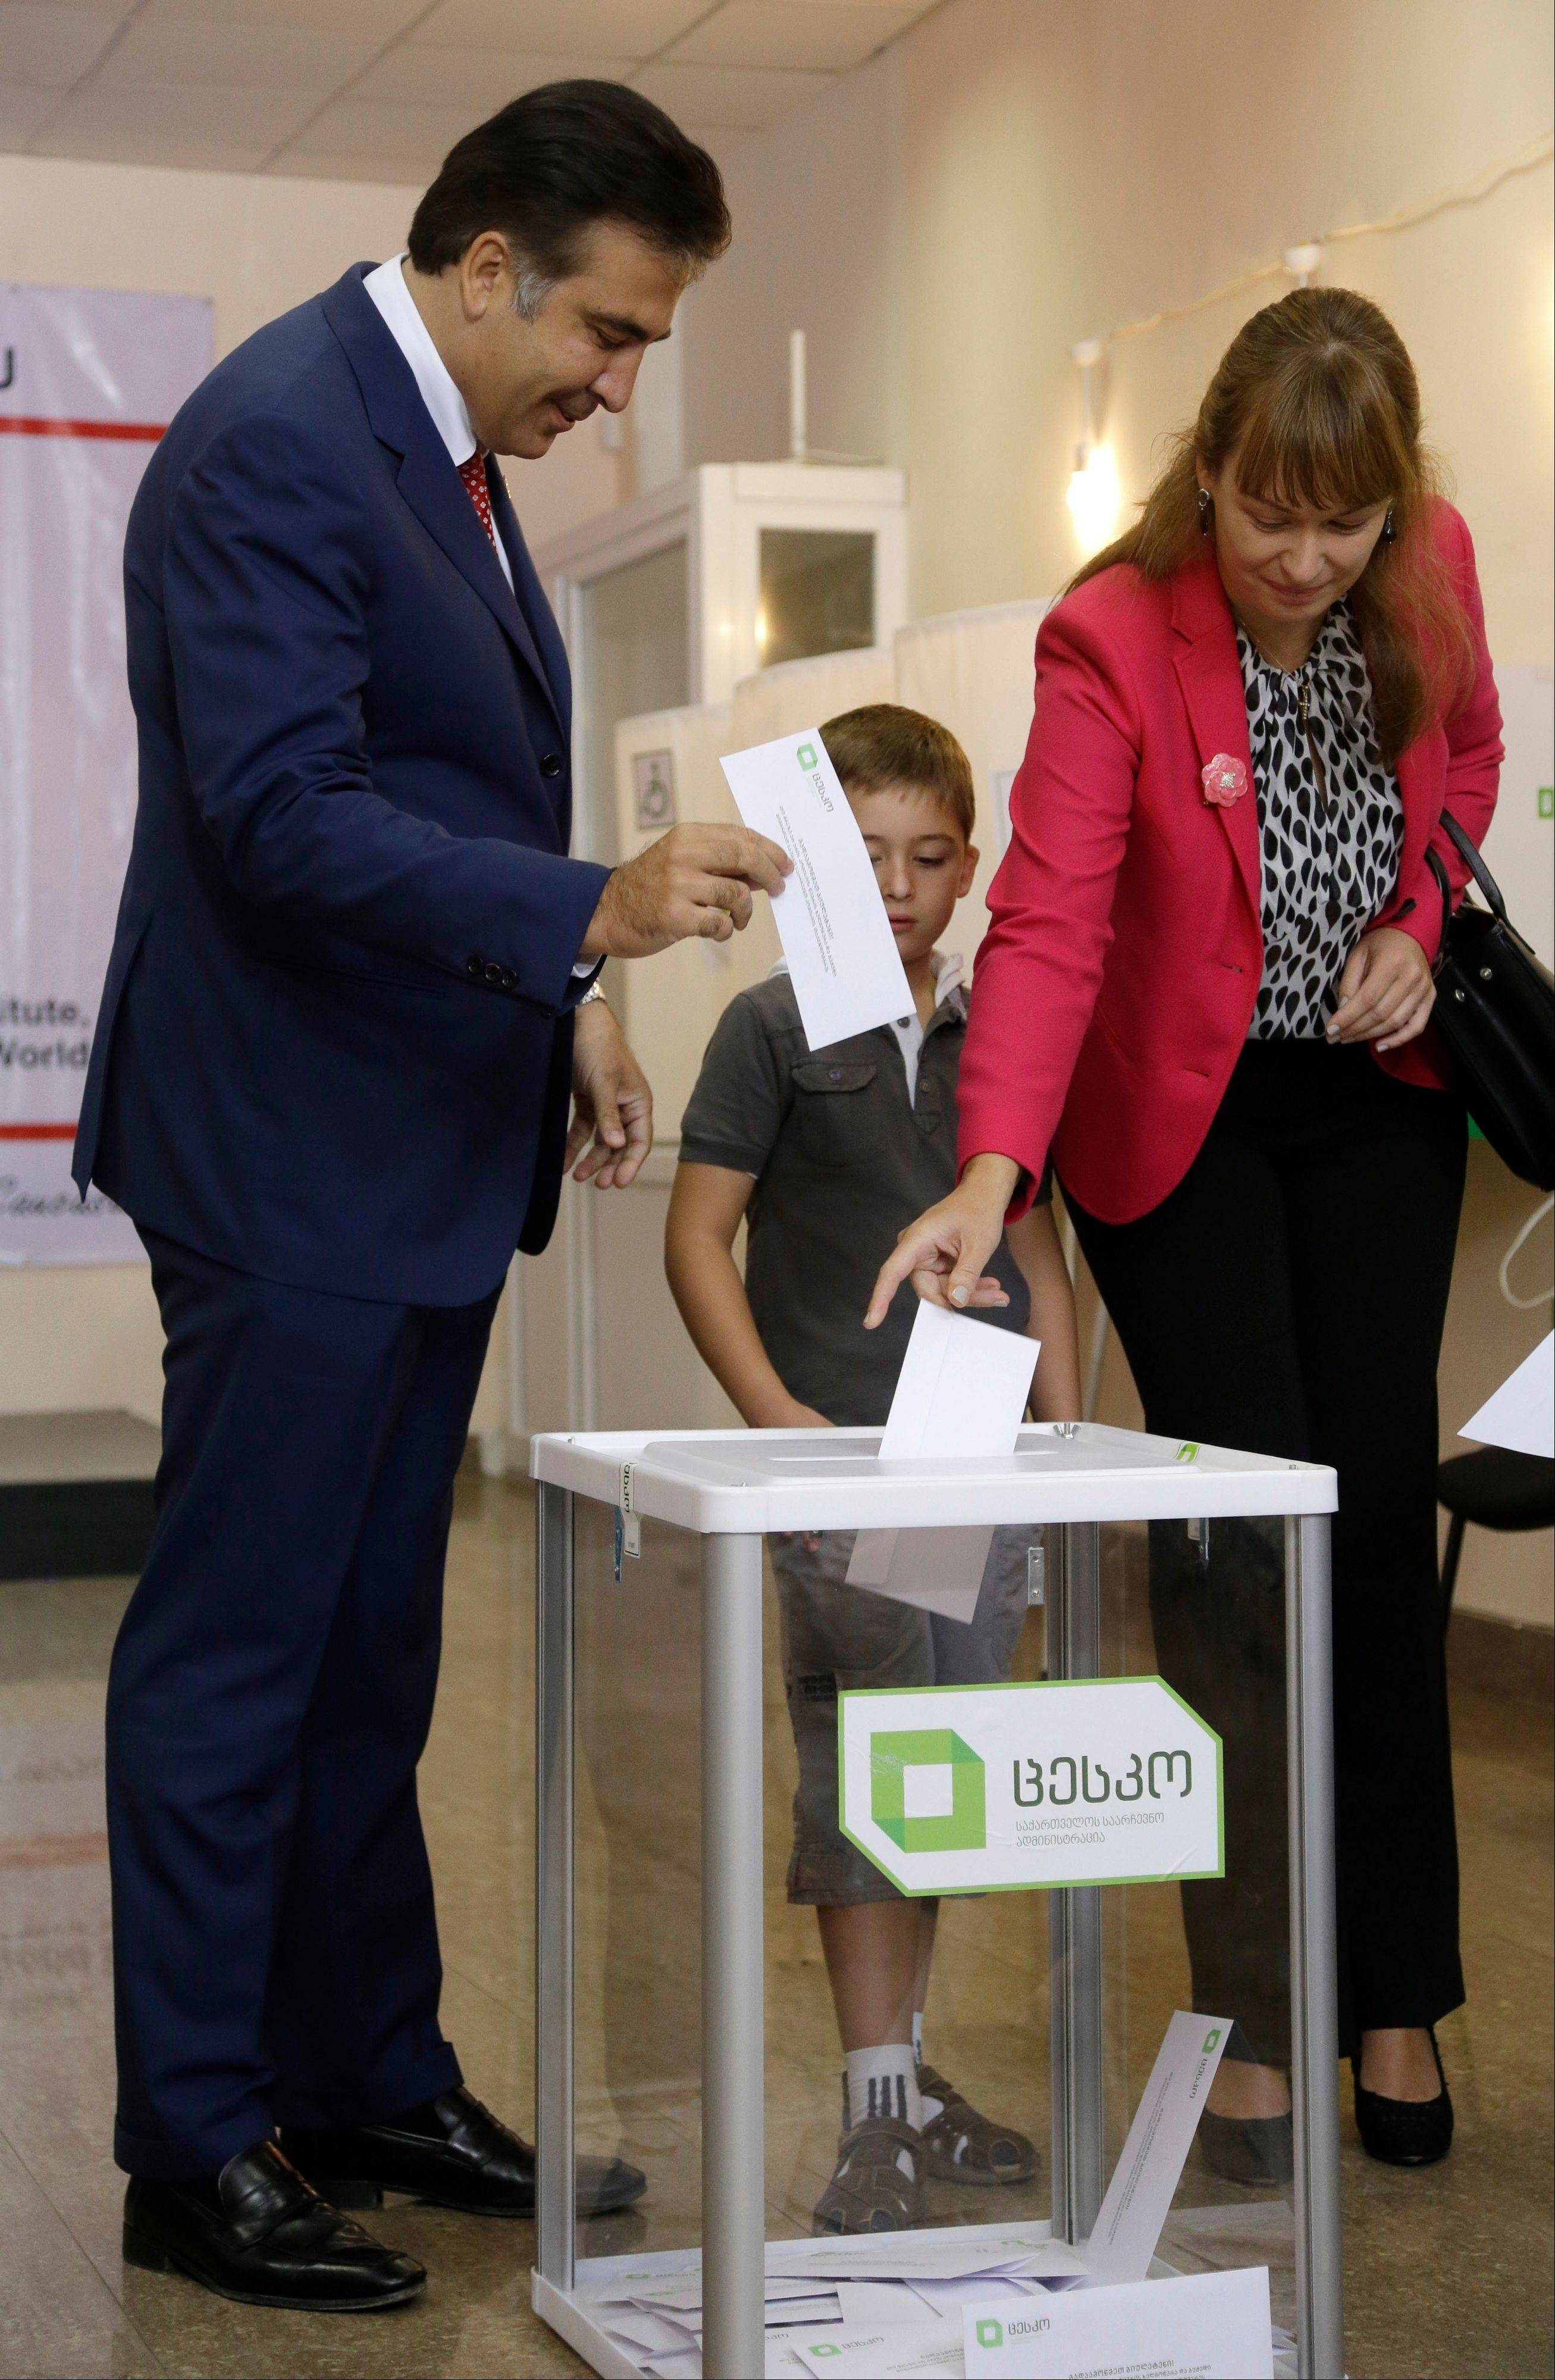 Georgian President Mikhail Saakashvili, left, and his wife, Sandra Roelofs cast their ballots as their son Nikoloz stands beside them at a polling station in Tbilisi, Georgia, Monday. Voters in Georgia are choosing a new parliament in a heated election that will decide the future of Saakashvili's government.